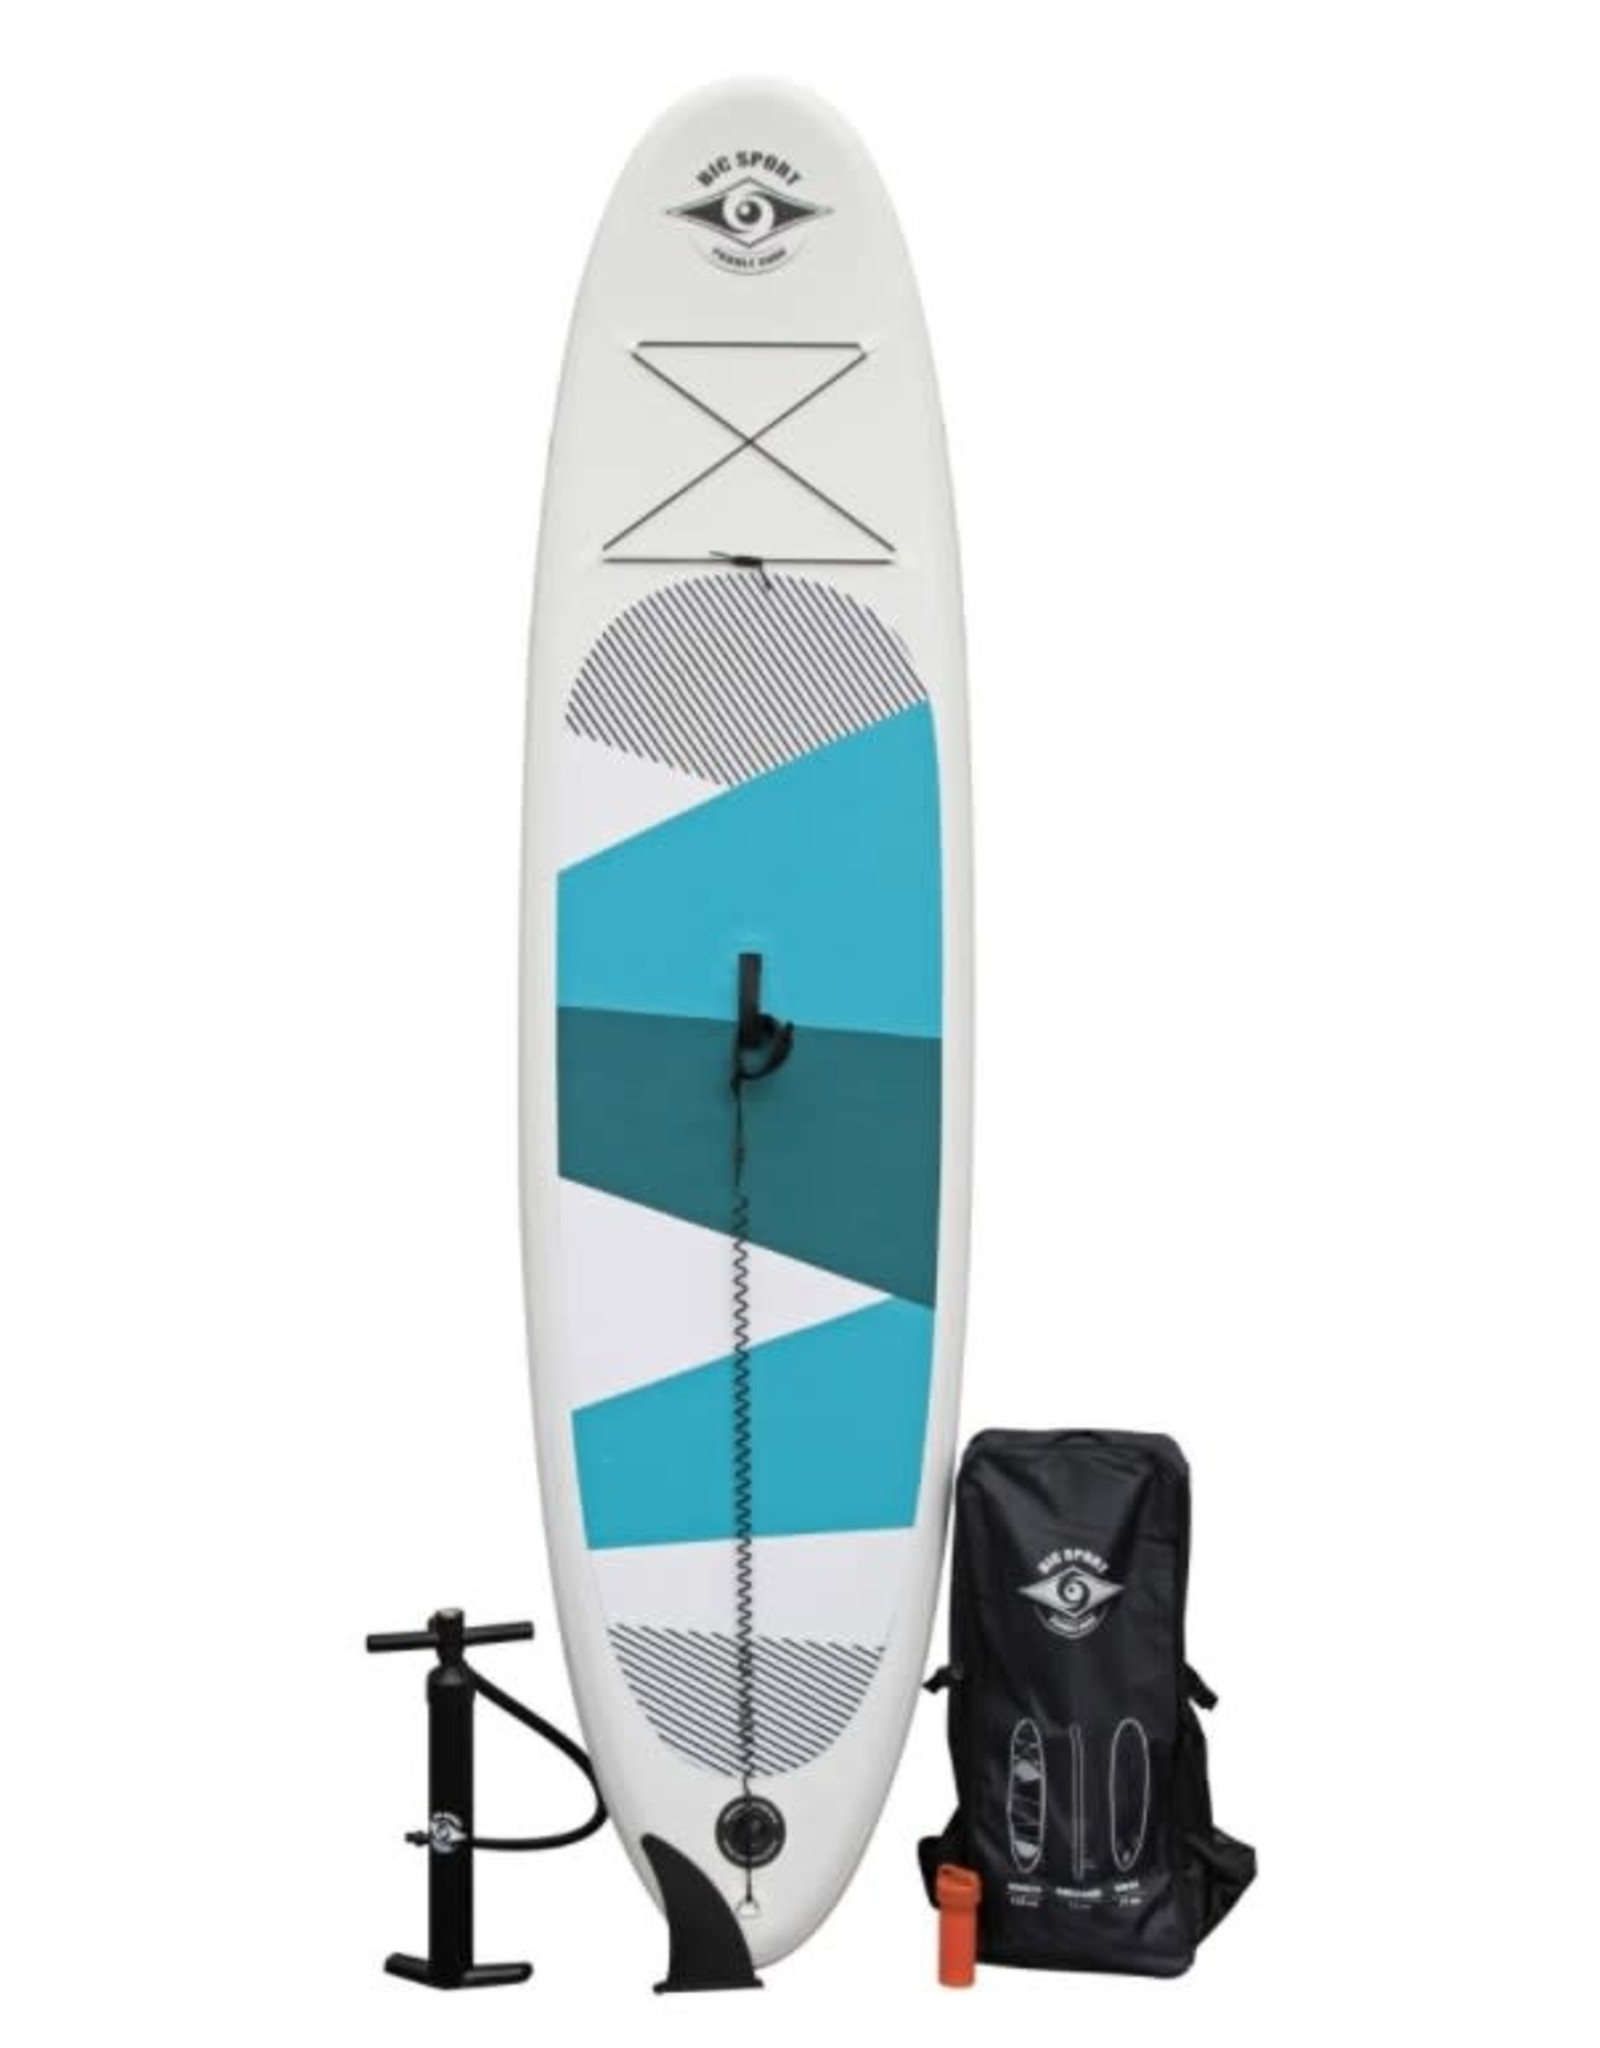 Bic Sport Bic SUP Air Breeze Pack